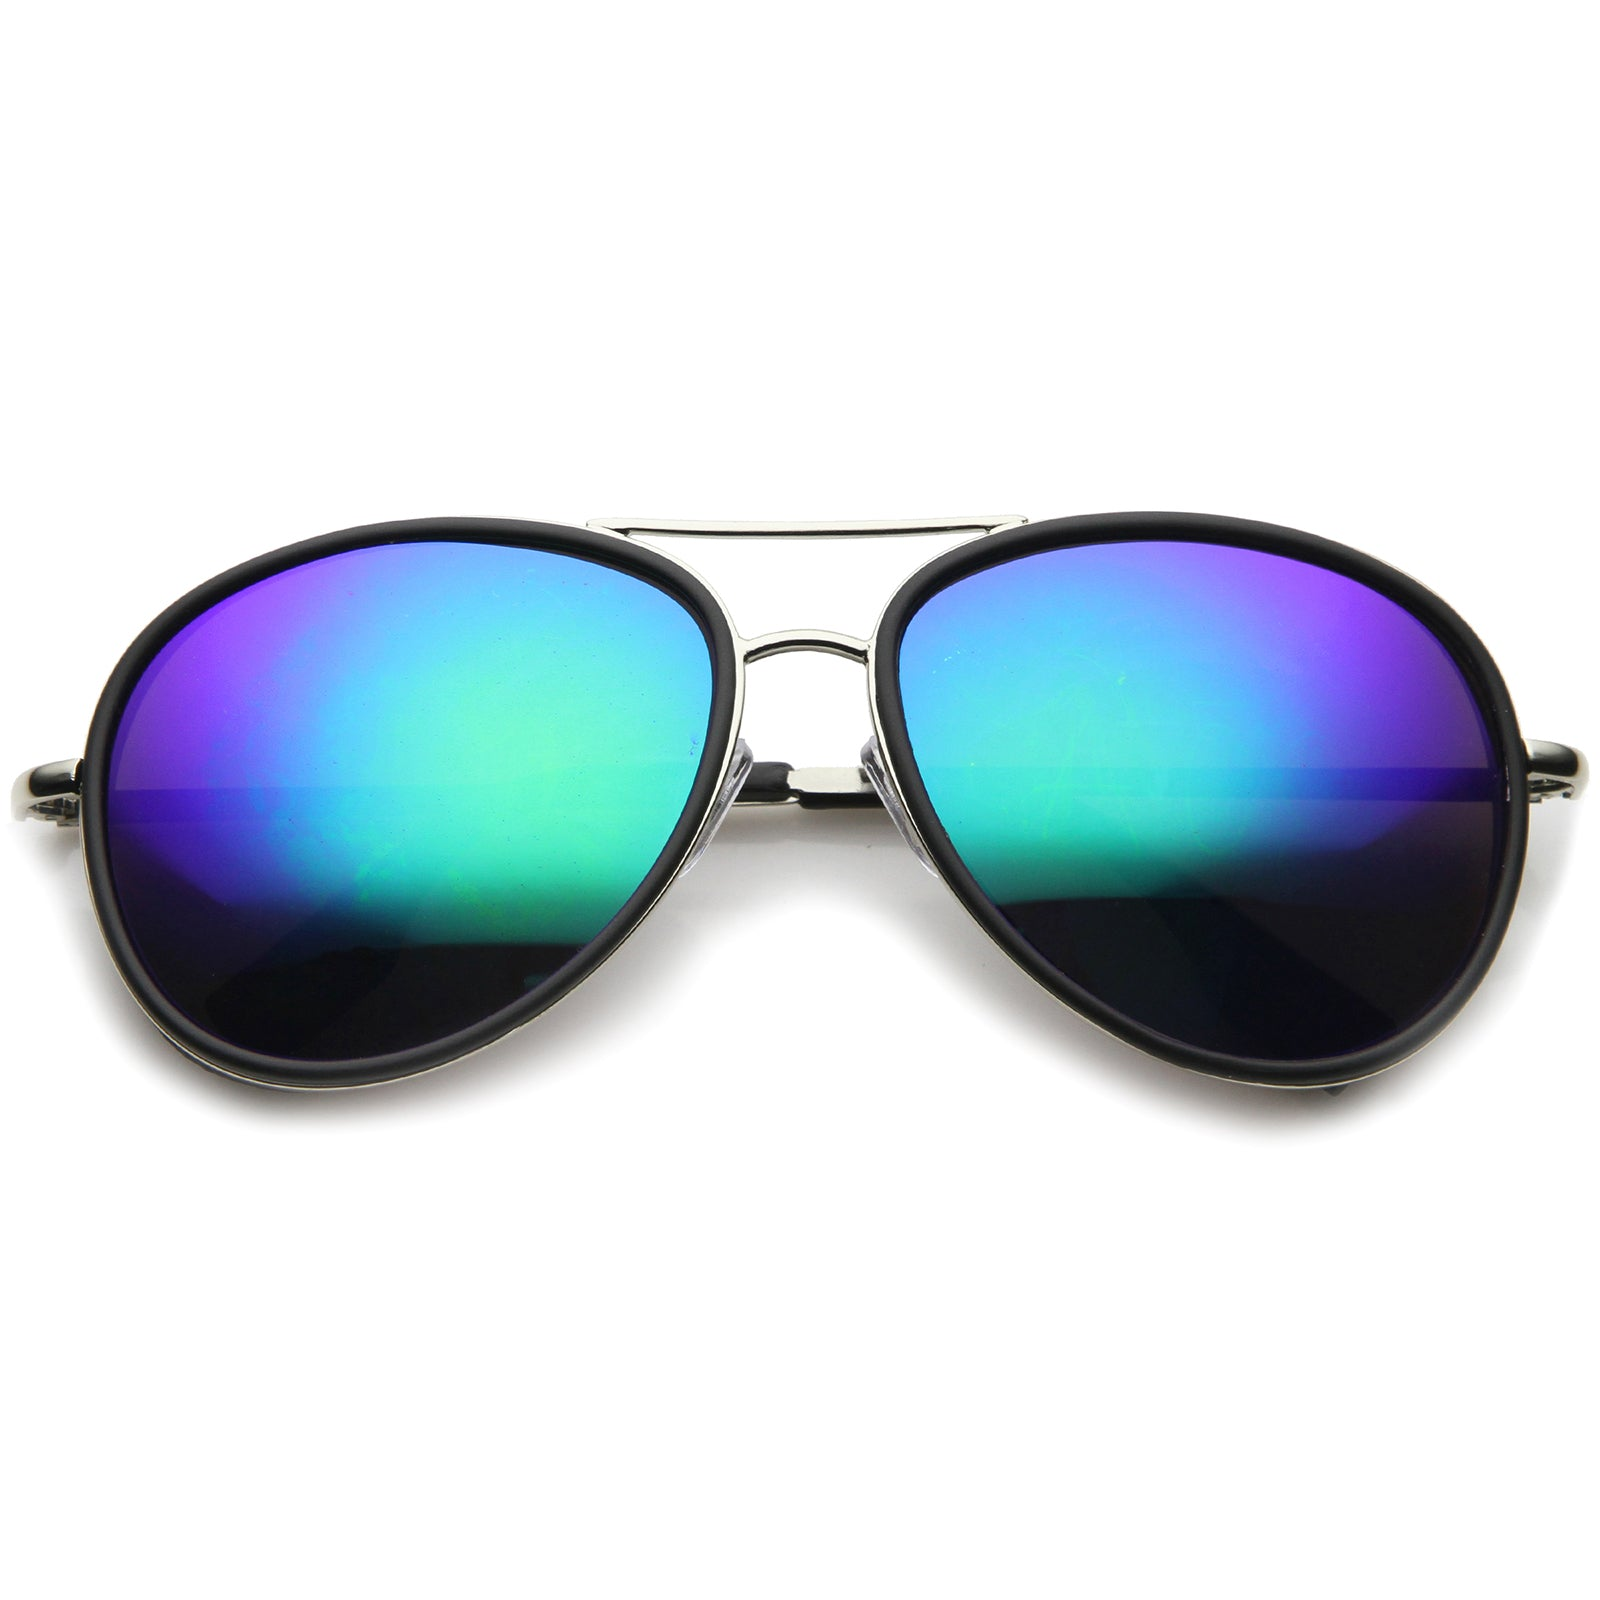 Mens Aviator Sunglasses With UV400 Protected Mirrored Lens - sunglass.la - 9